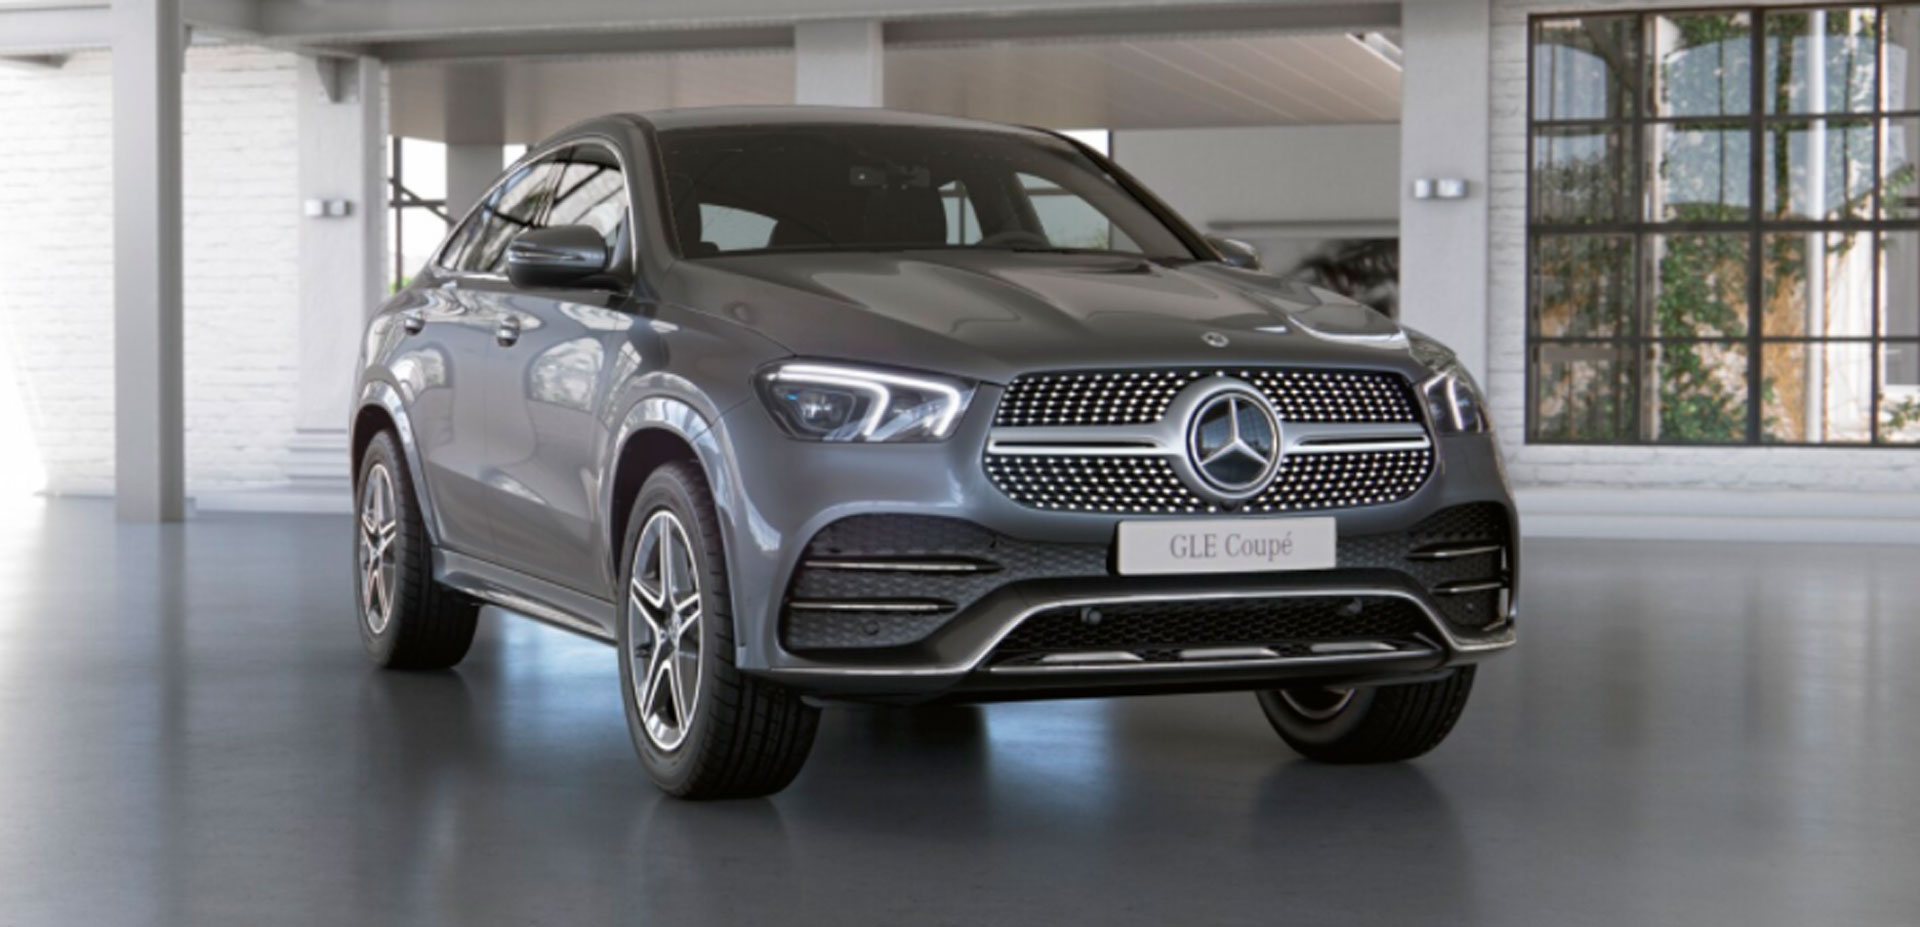 Mercedes-Benz GLE Coupe 0152632015